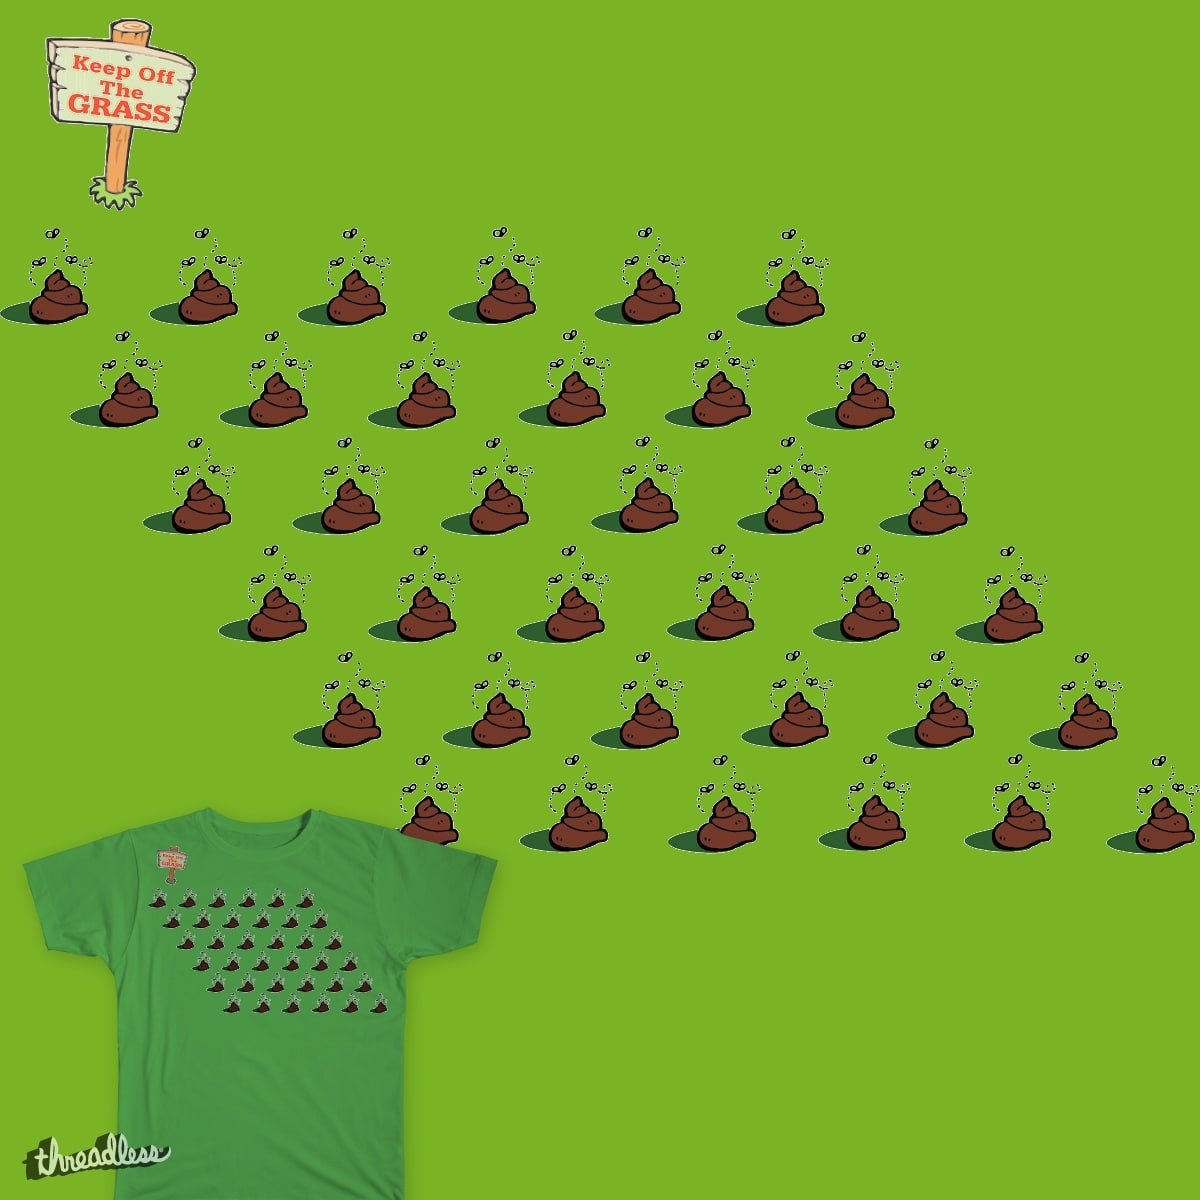 Keep Off The Grass by fleedom on Threadless